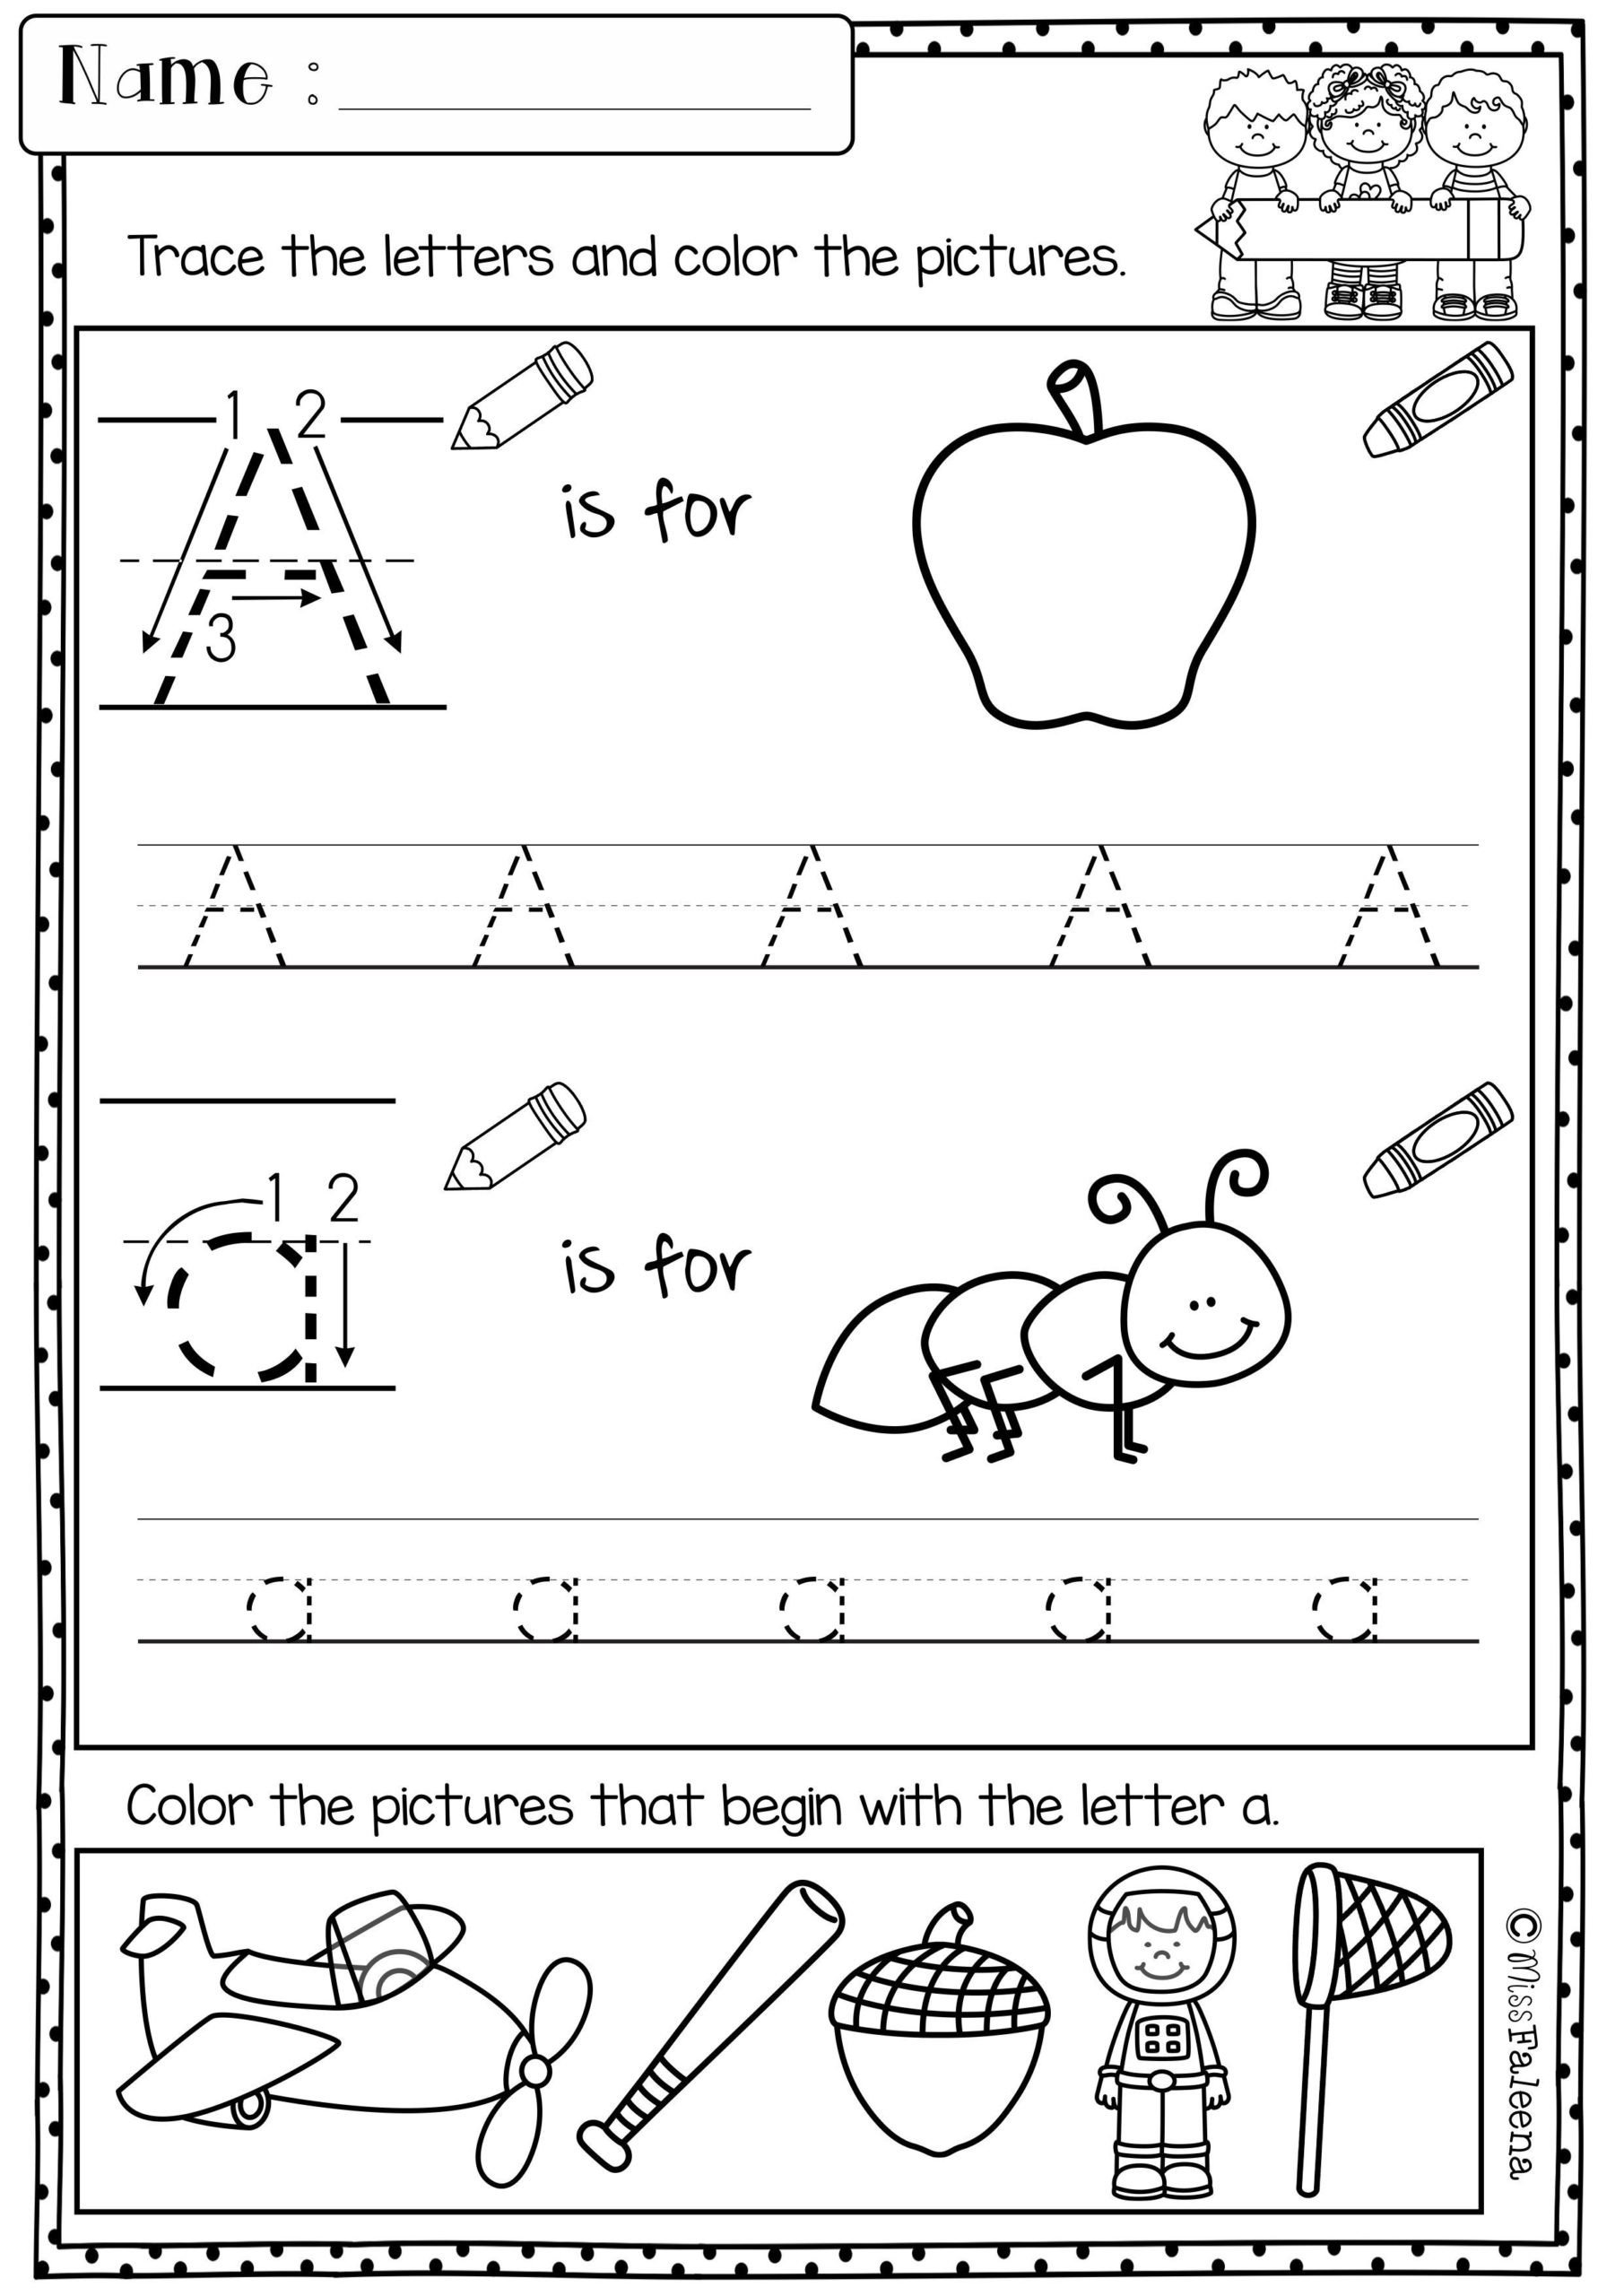 Calendar Worksheet for Kindergarten Worksheet Printable Calendar Template Birthday Cutoff for